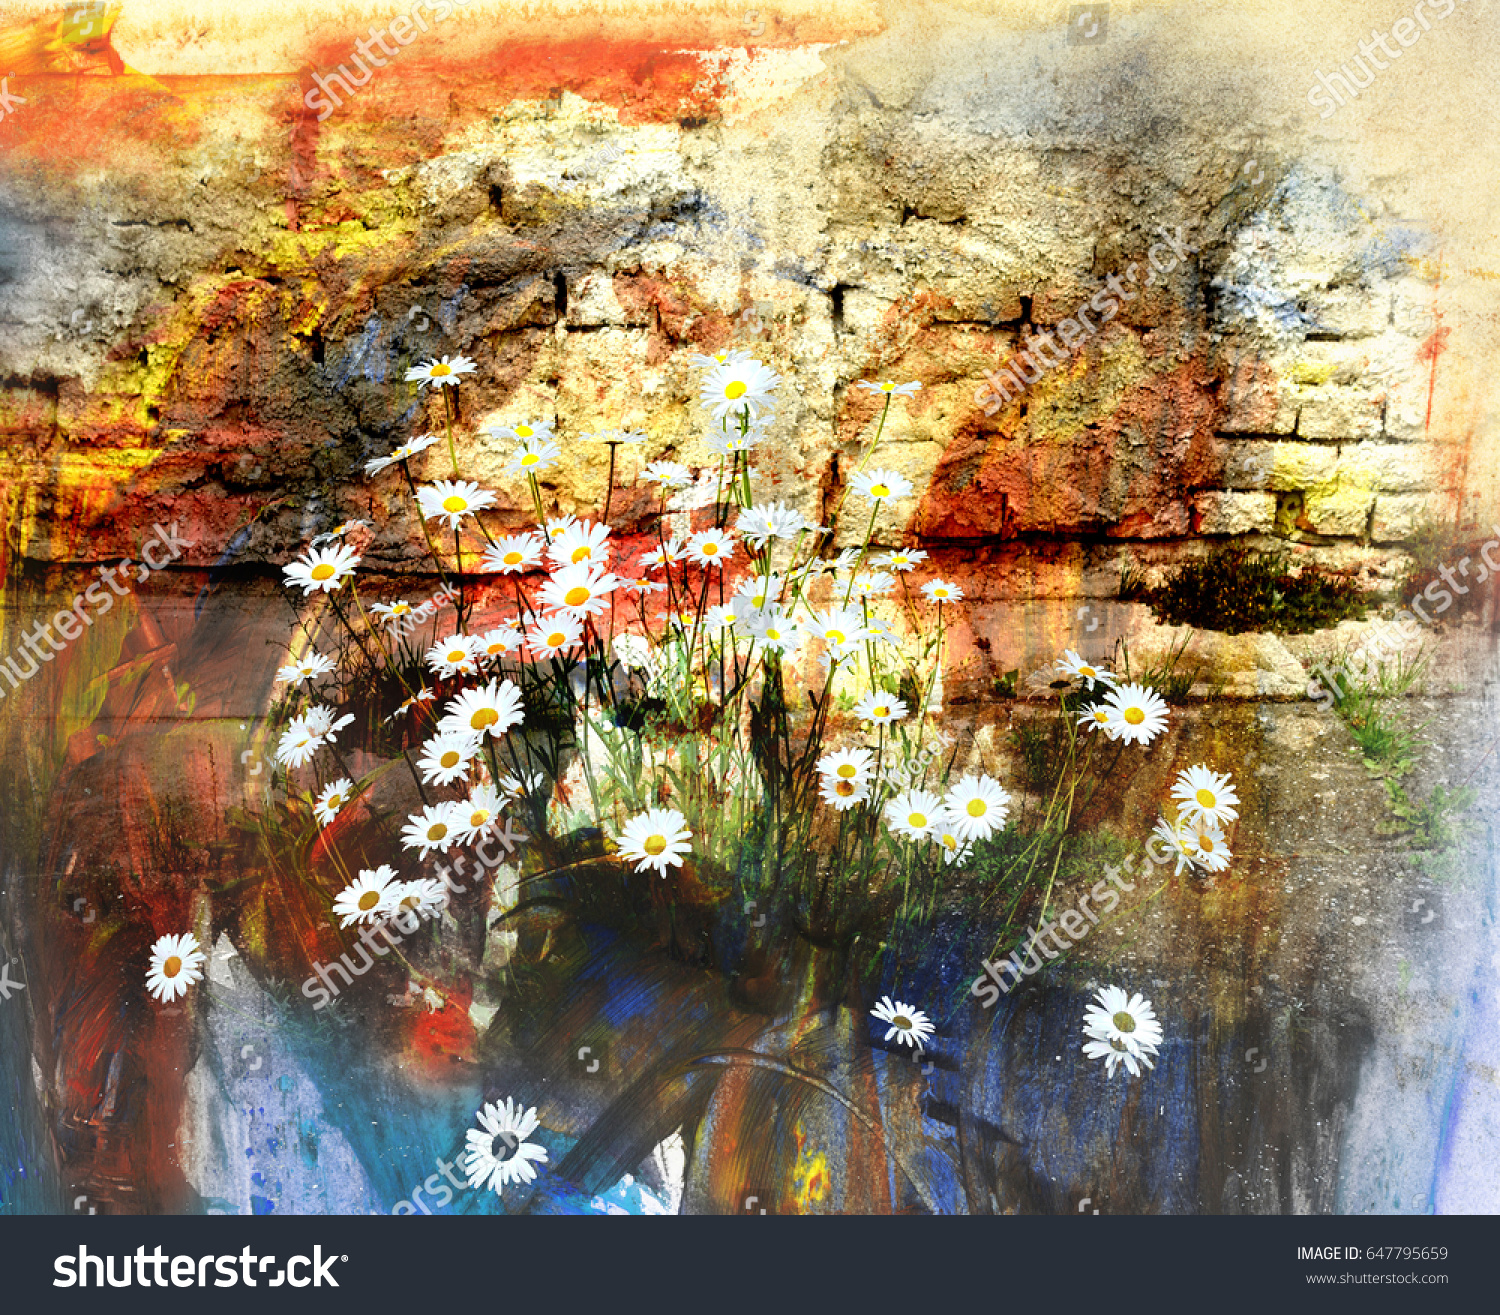 Blooming Daisies With A Wall Oil Painting And Combined Technique